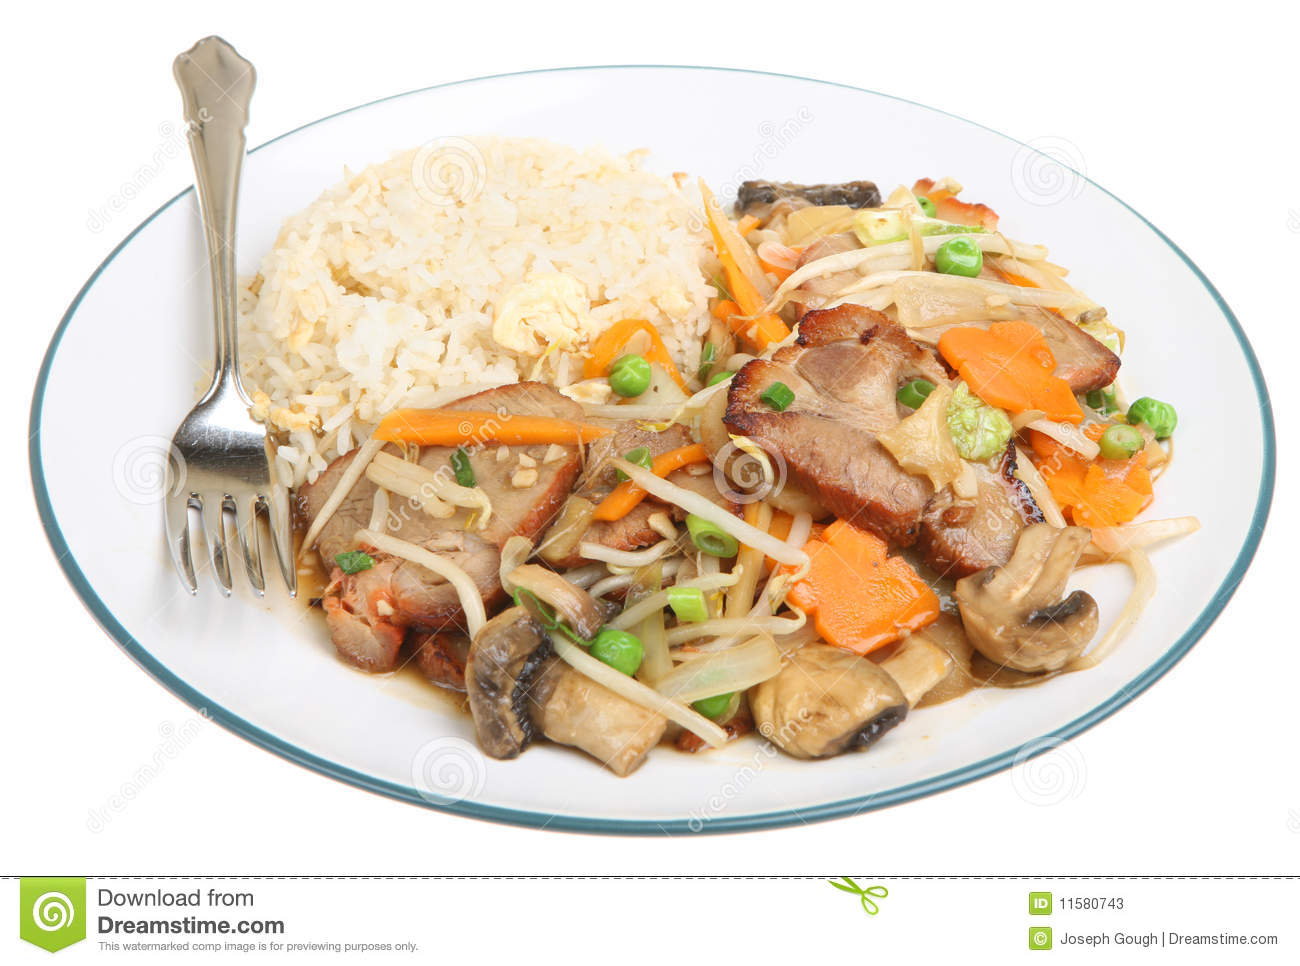 Chinese Pork With Vegetables & Rice Stock Photos - Image: 11580743